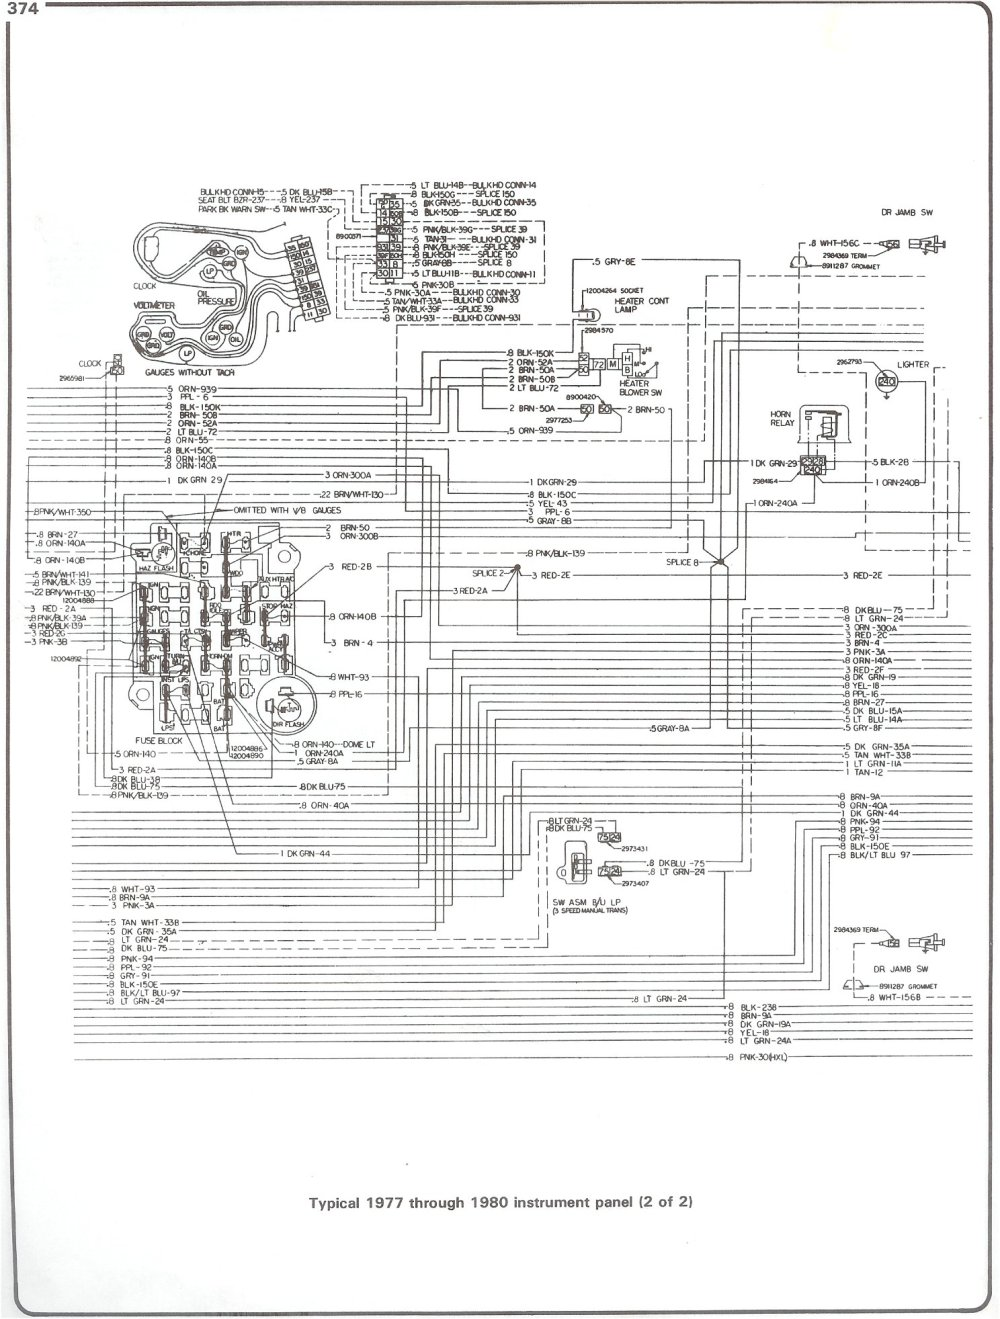 medium resolution of wiring diagram for arctic cat jag 3000 images gallery